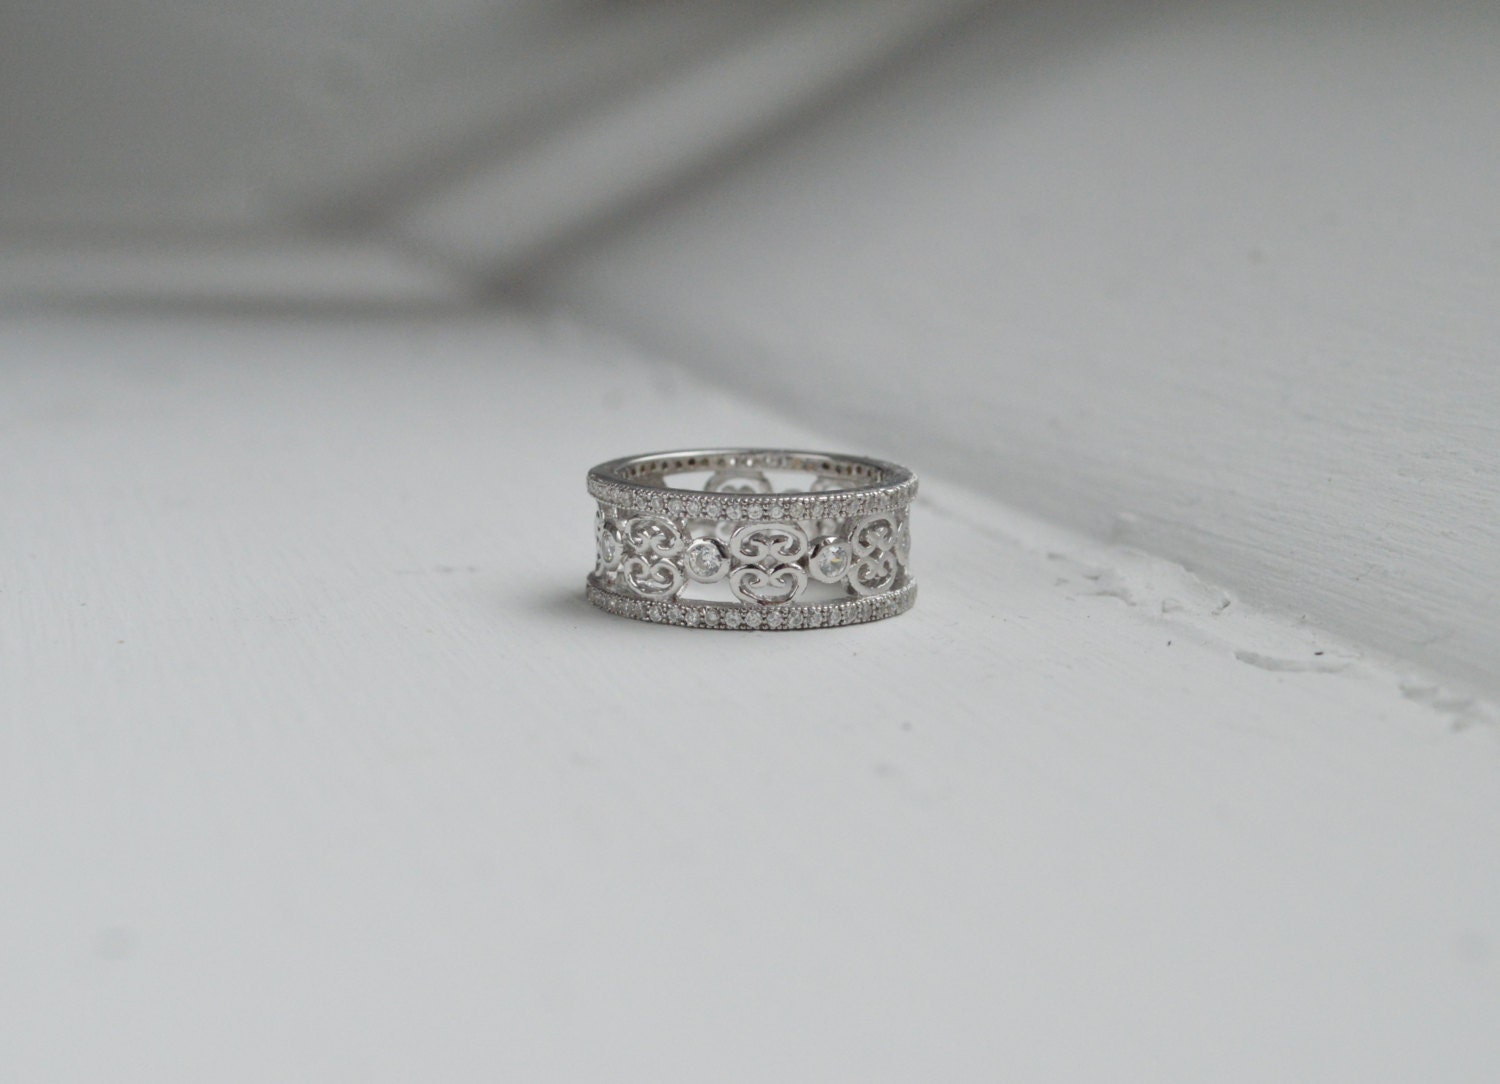 anniversary diamond singular of round eternity stone band ringshigh end size full carat ringeternity ringswide ideas bands high pictures ring cut wide diamondernity rings